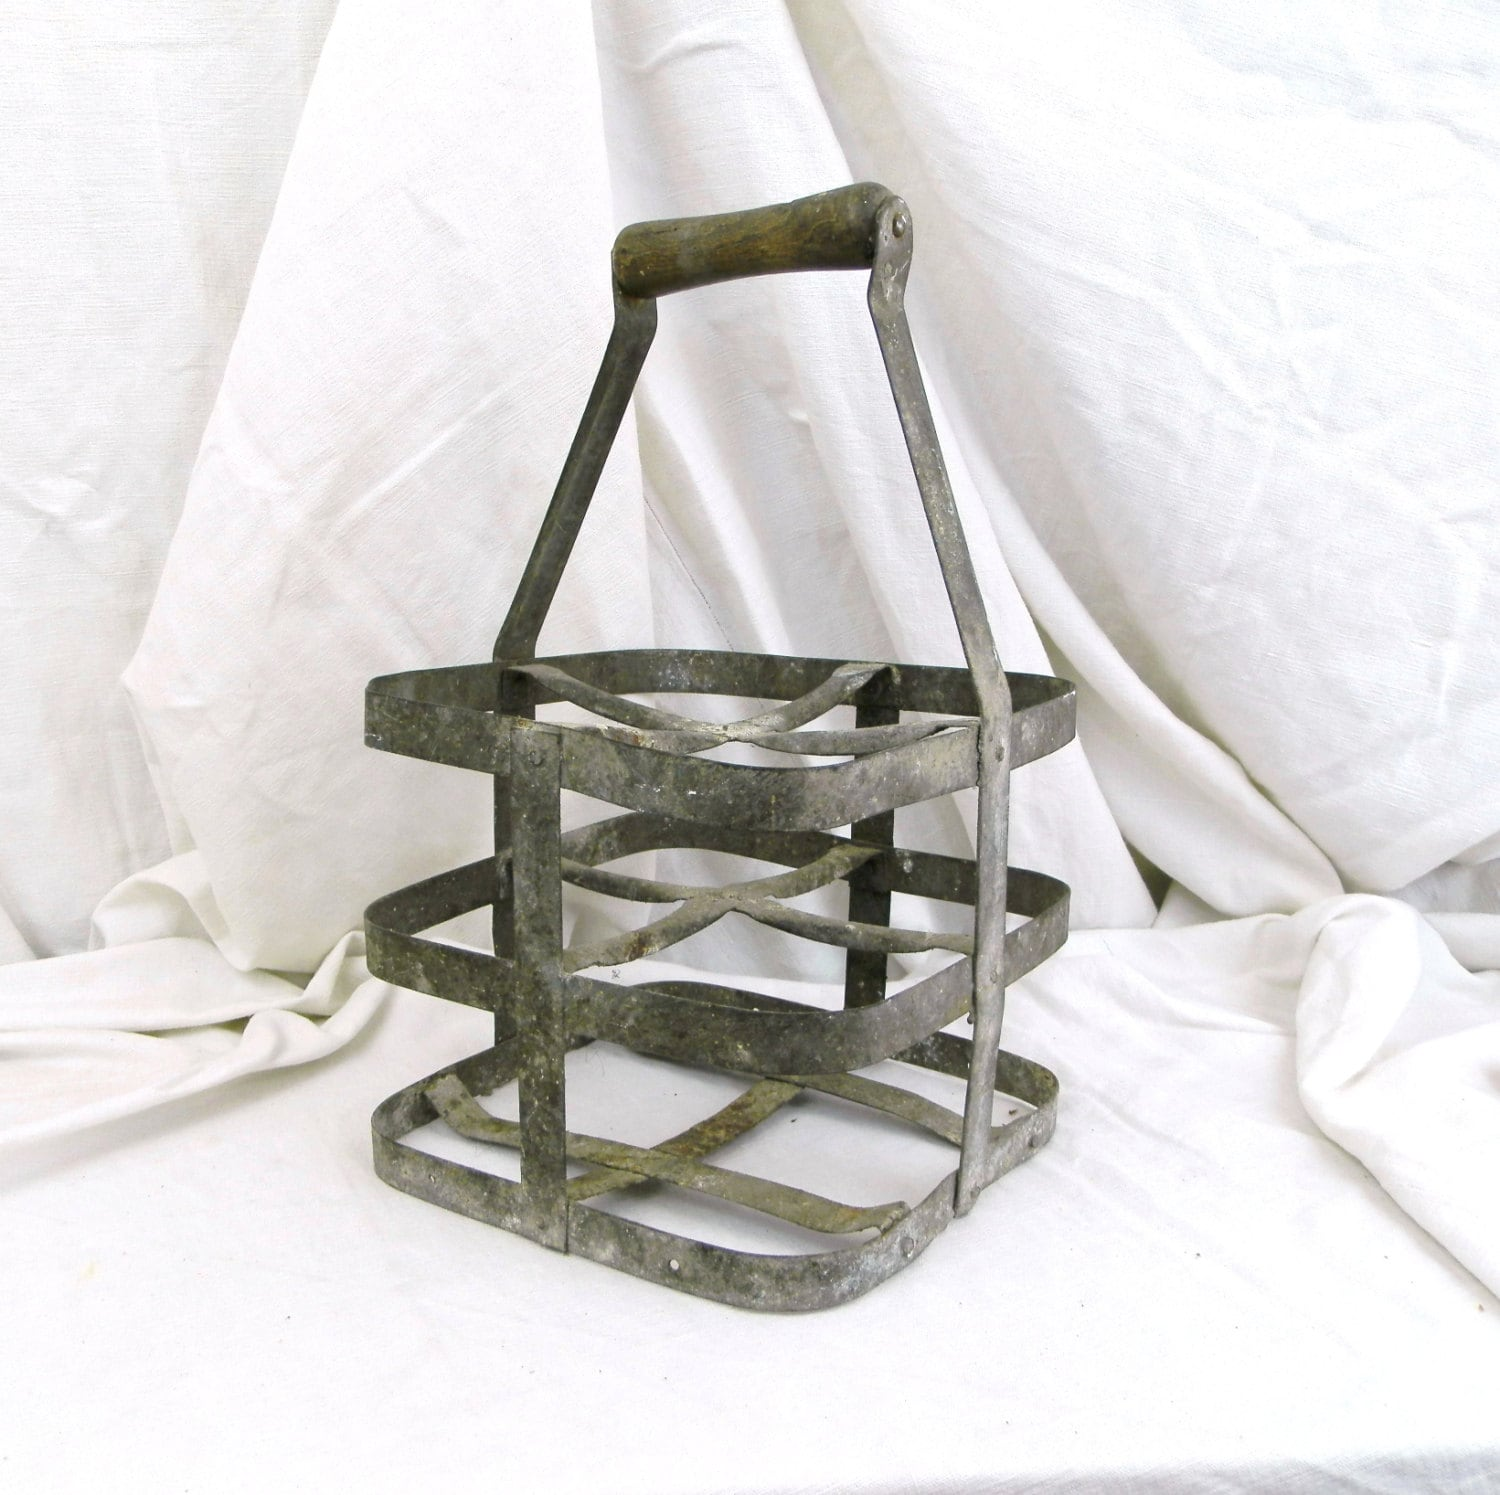 Vintage french metal wine bottle carrier for 4 bottles - Wire wine bottle carrier ...